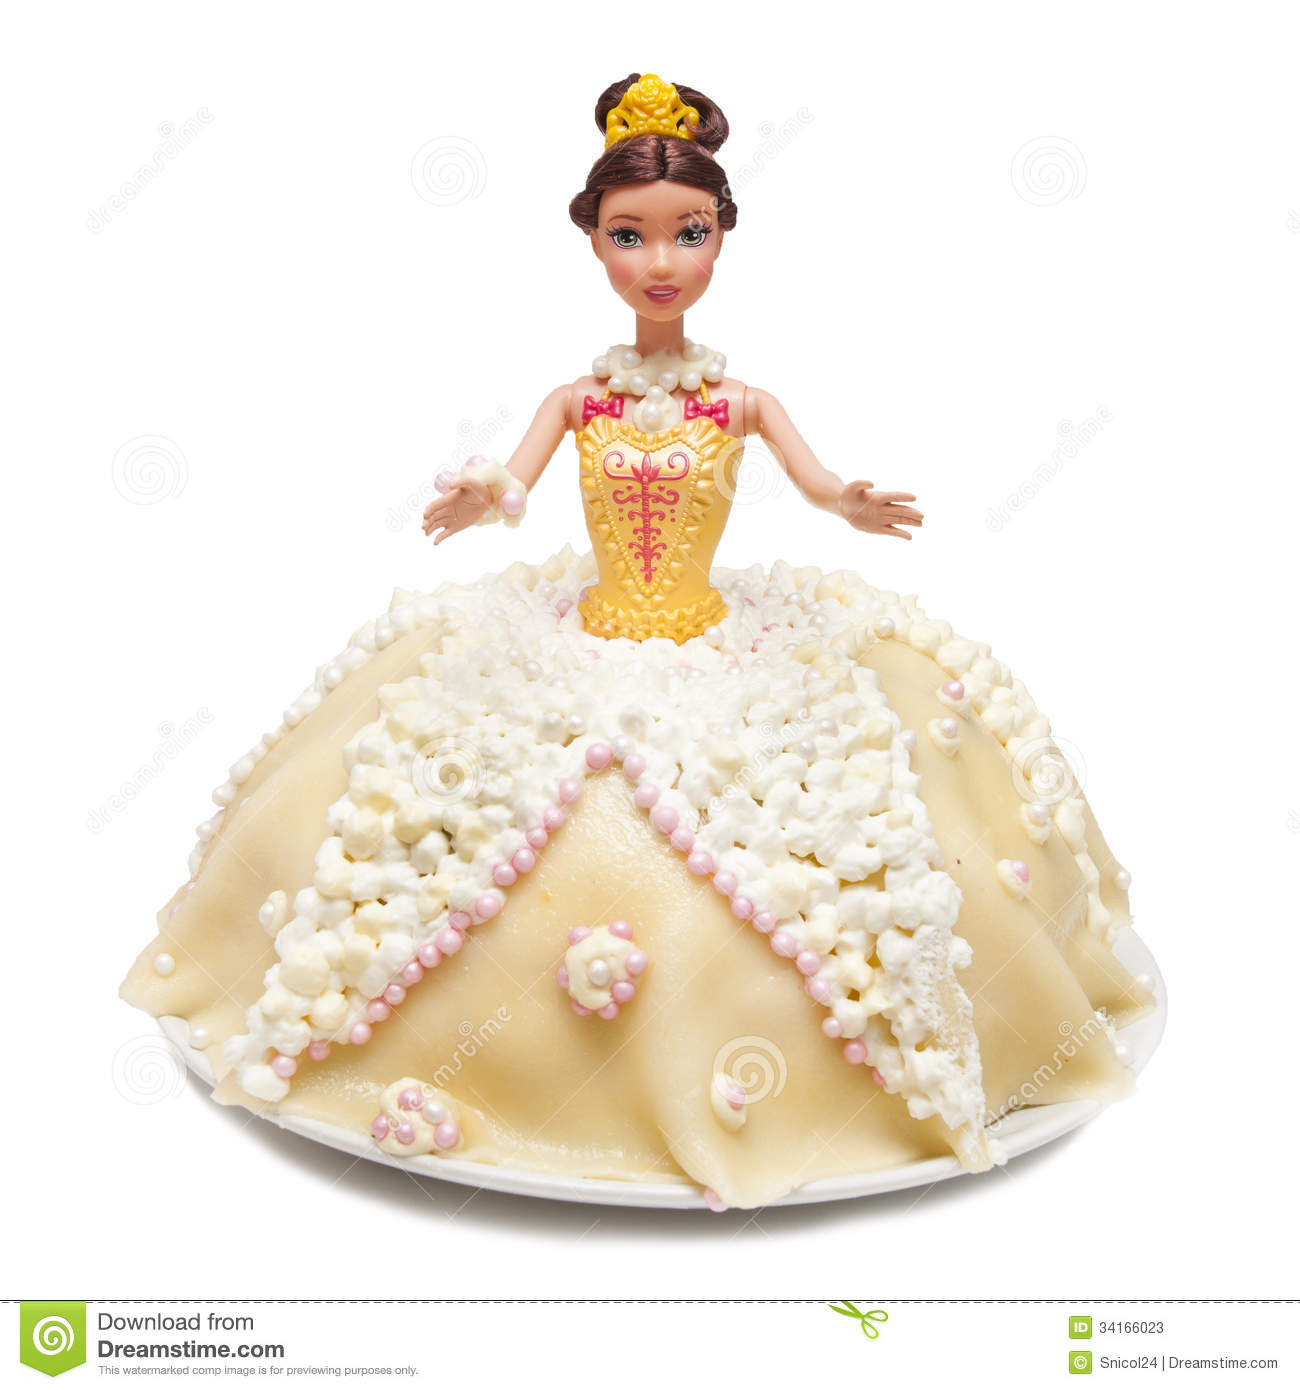 Doll Cake Images Download : Princess doll cake stock image. Image of marzipan, plate ...